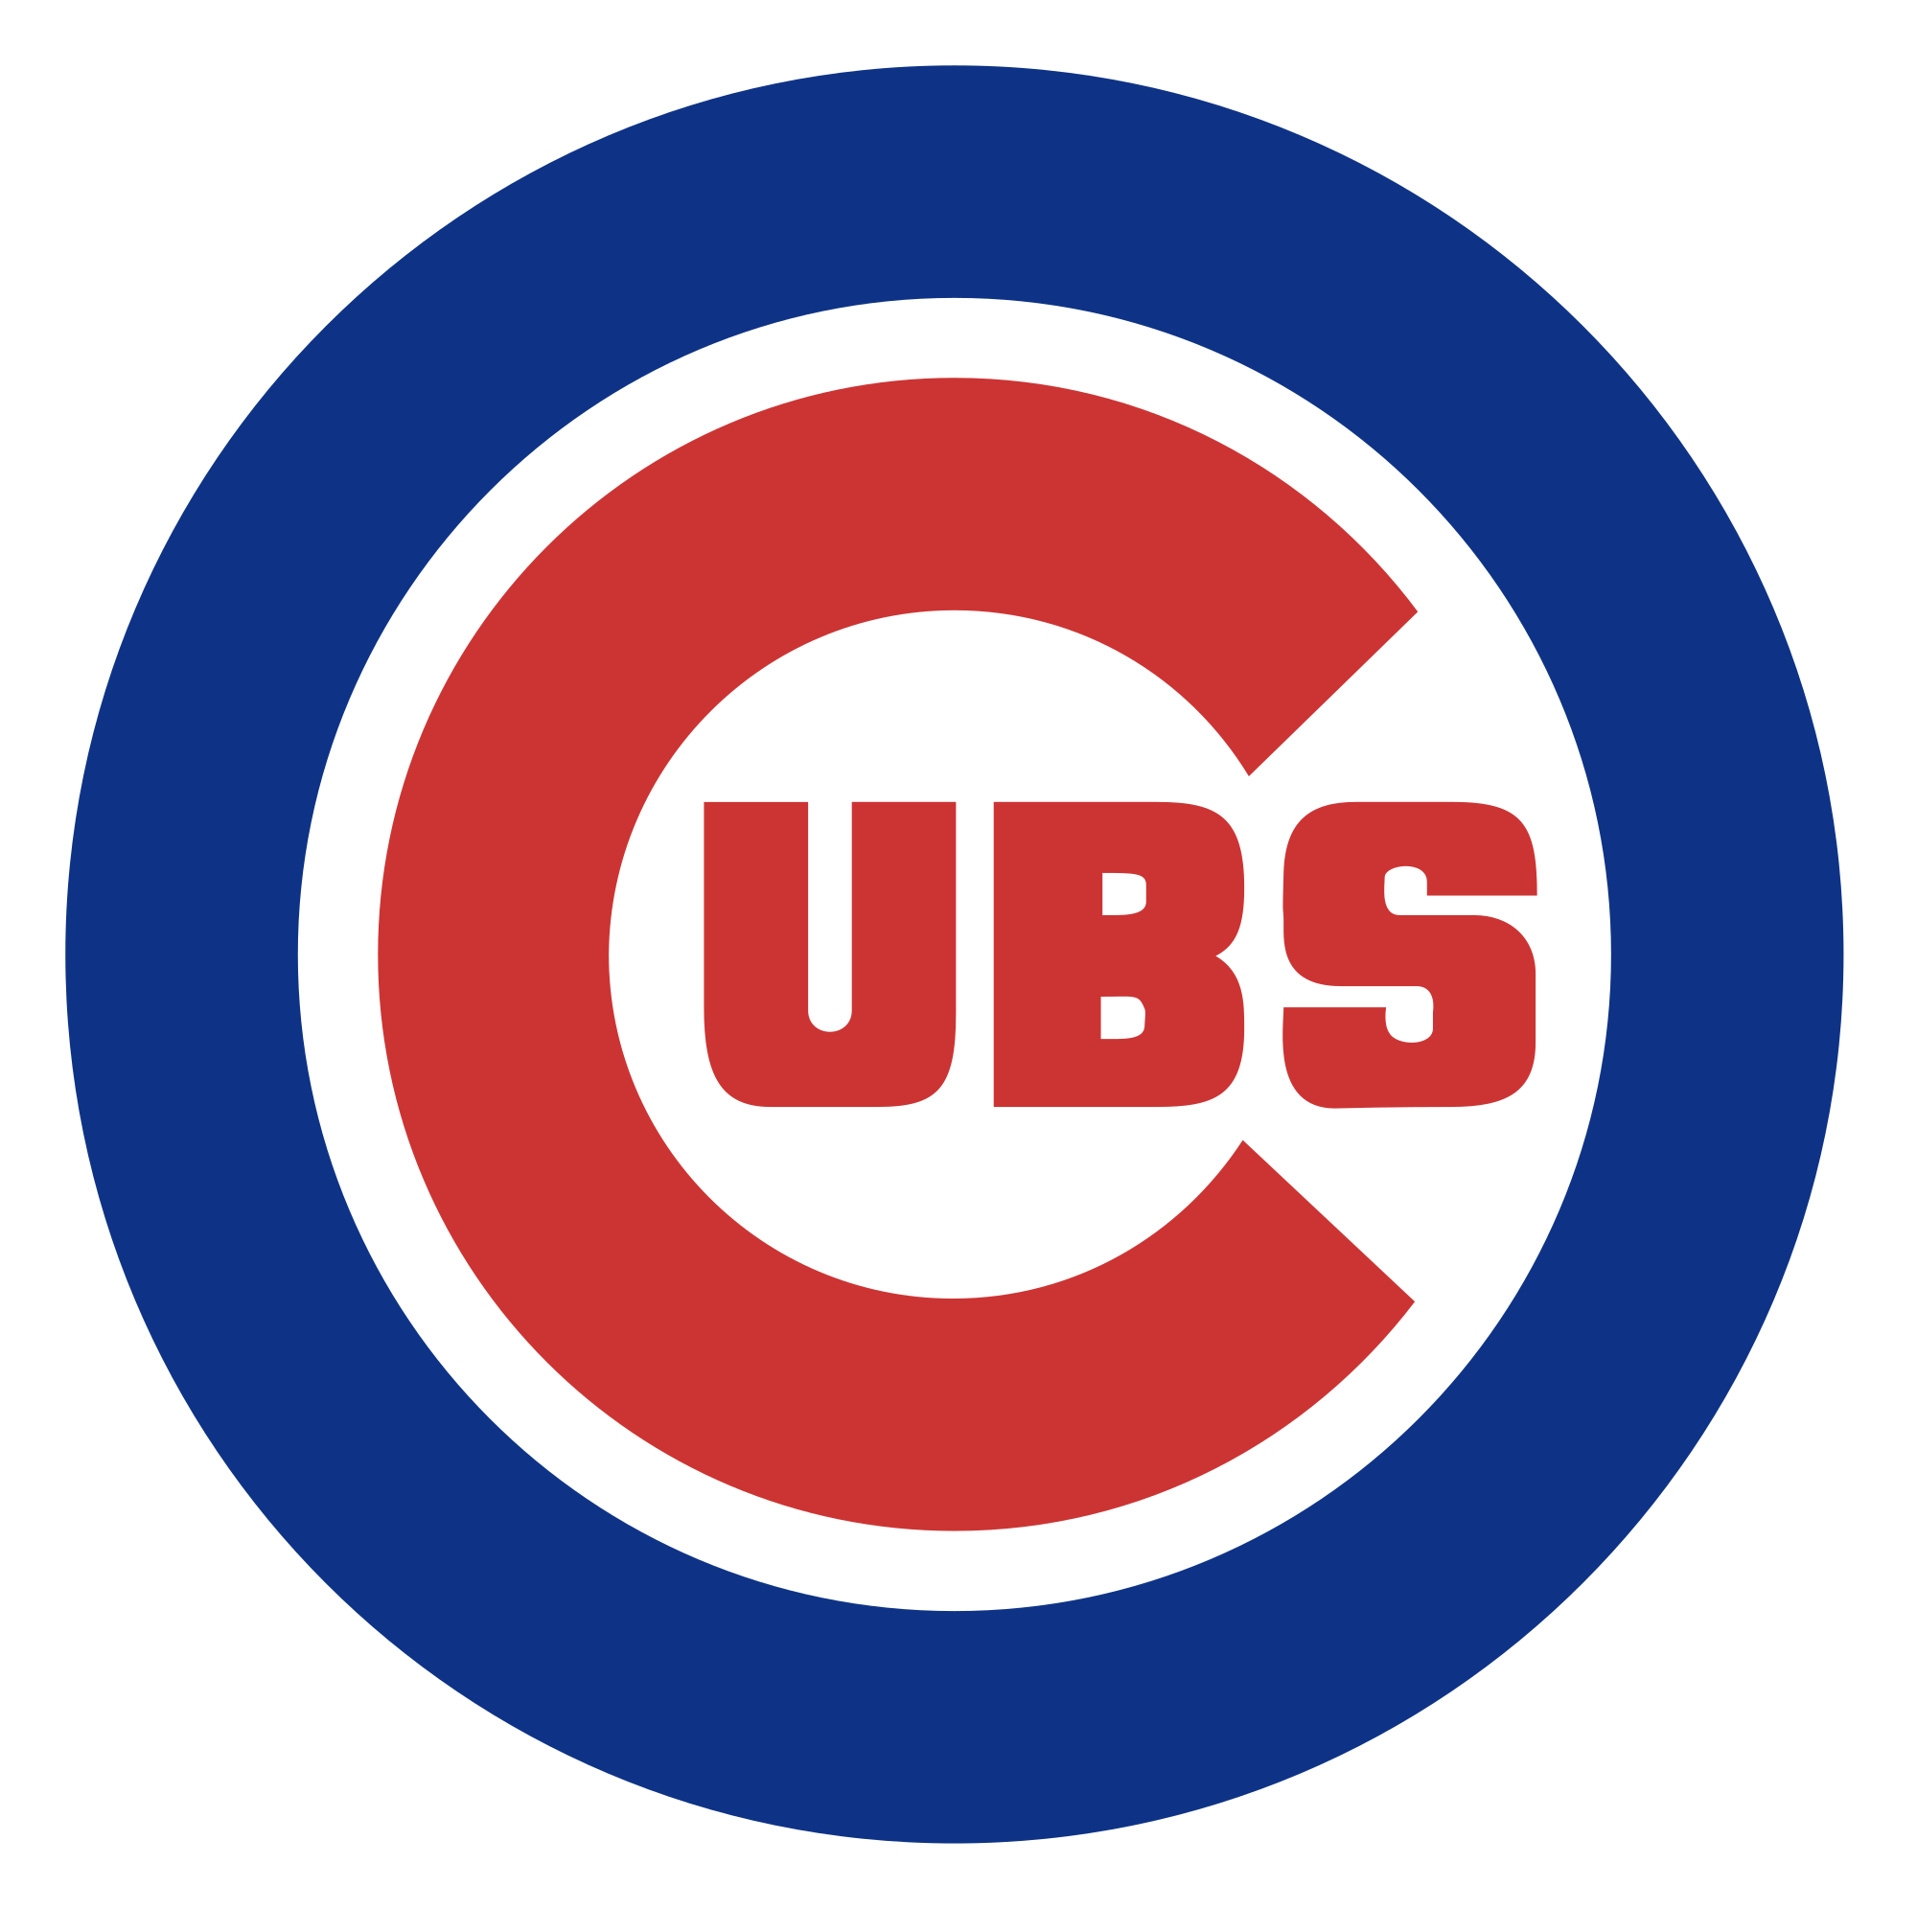 Chicago cubs logo 2017 png. File svg wikimedia commons